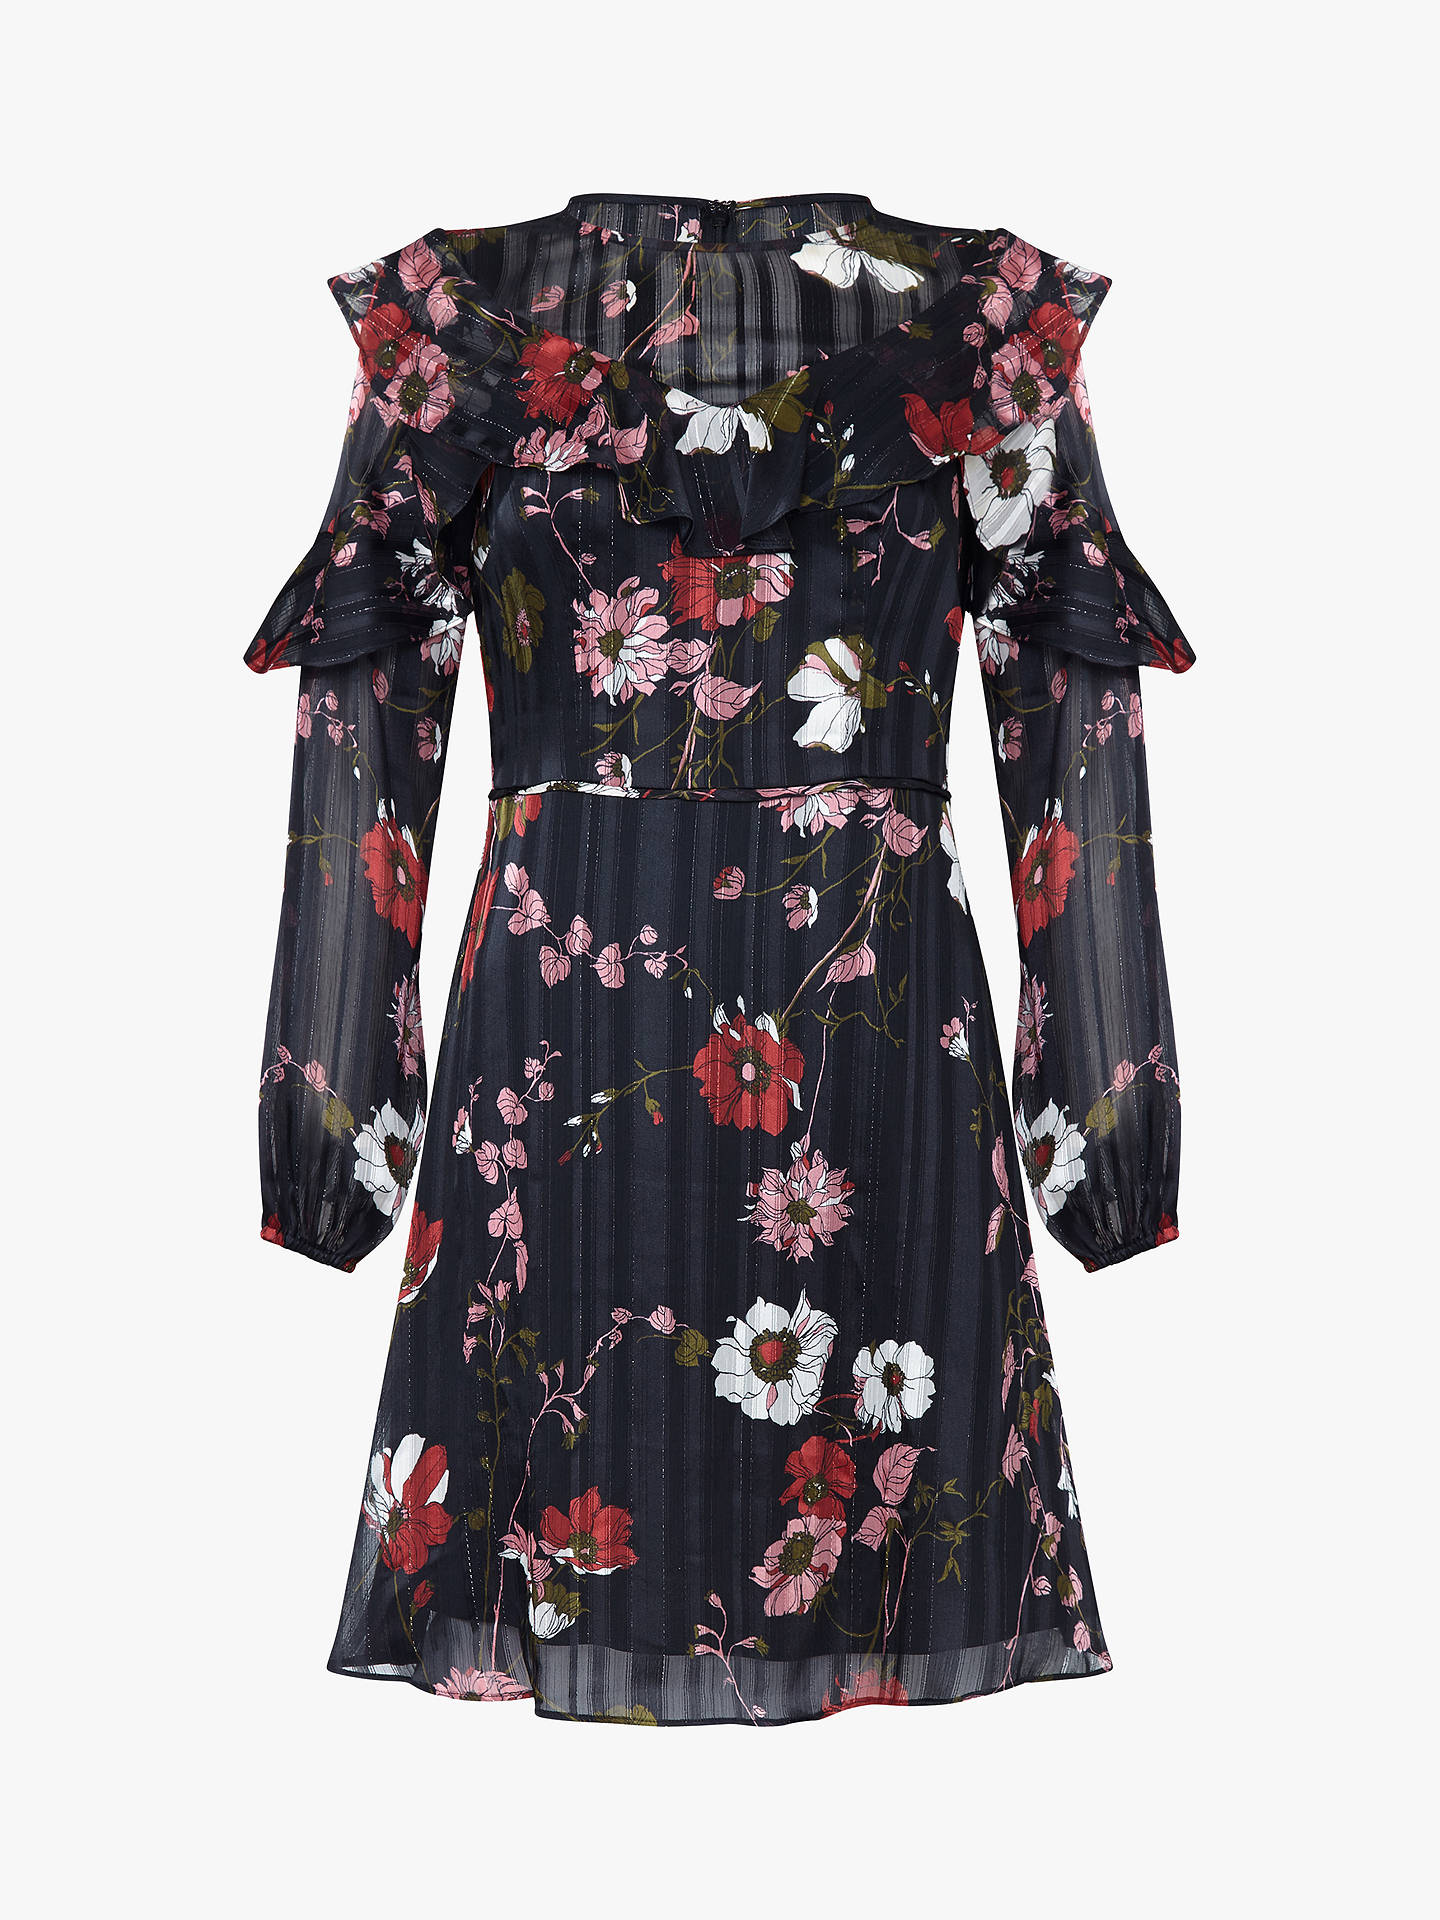 BuyAdrianna Papell Floral Lurex Ruffle Sleeve Dress, Black/Red/Multi, 18 Online at johnlewis.com